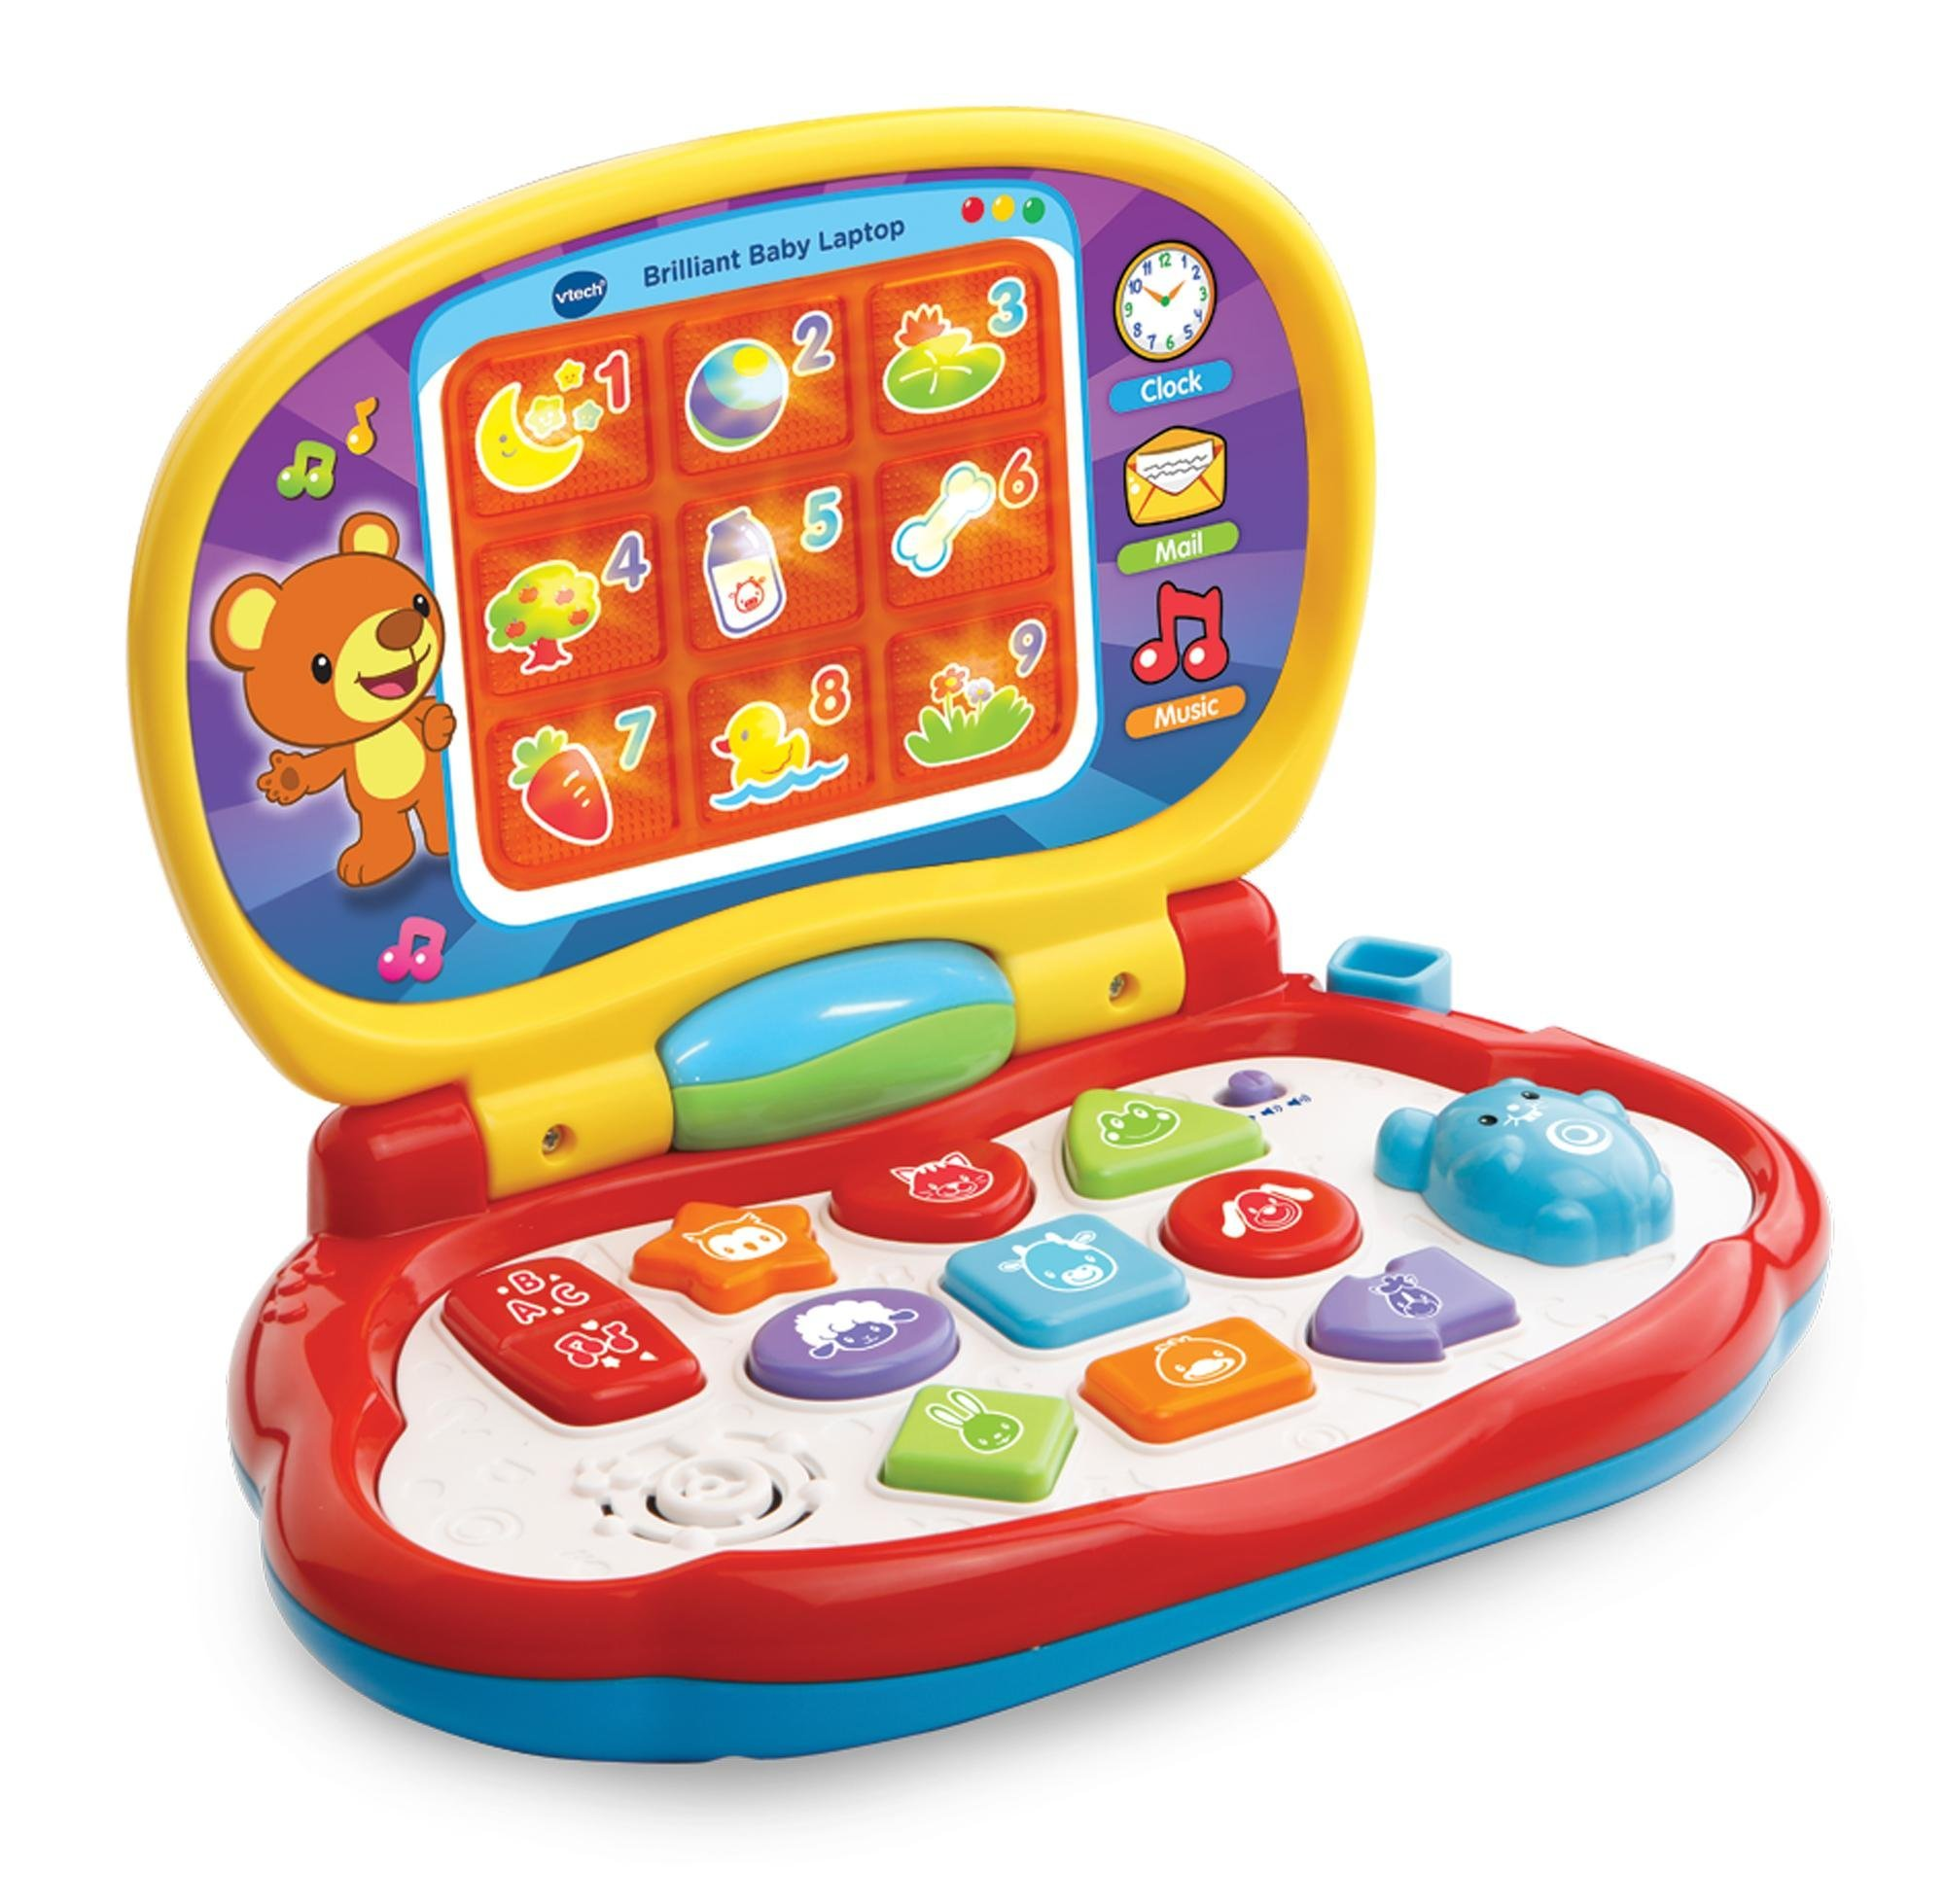 VTech Baby Baby s Laptop Multi Coloured VTech Baby Amazon